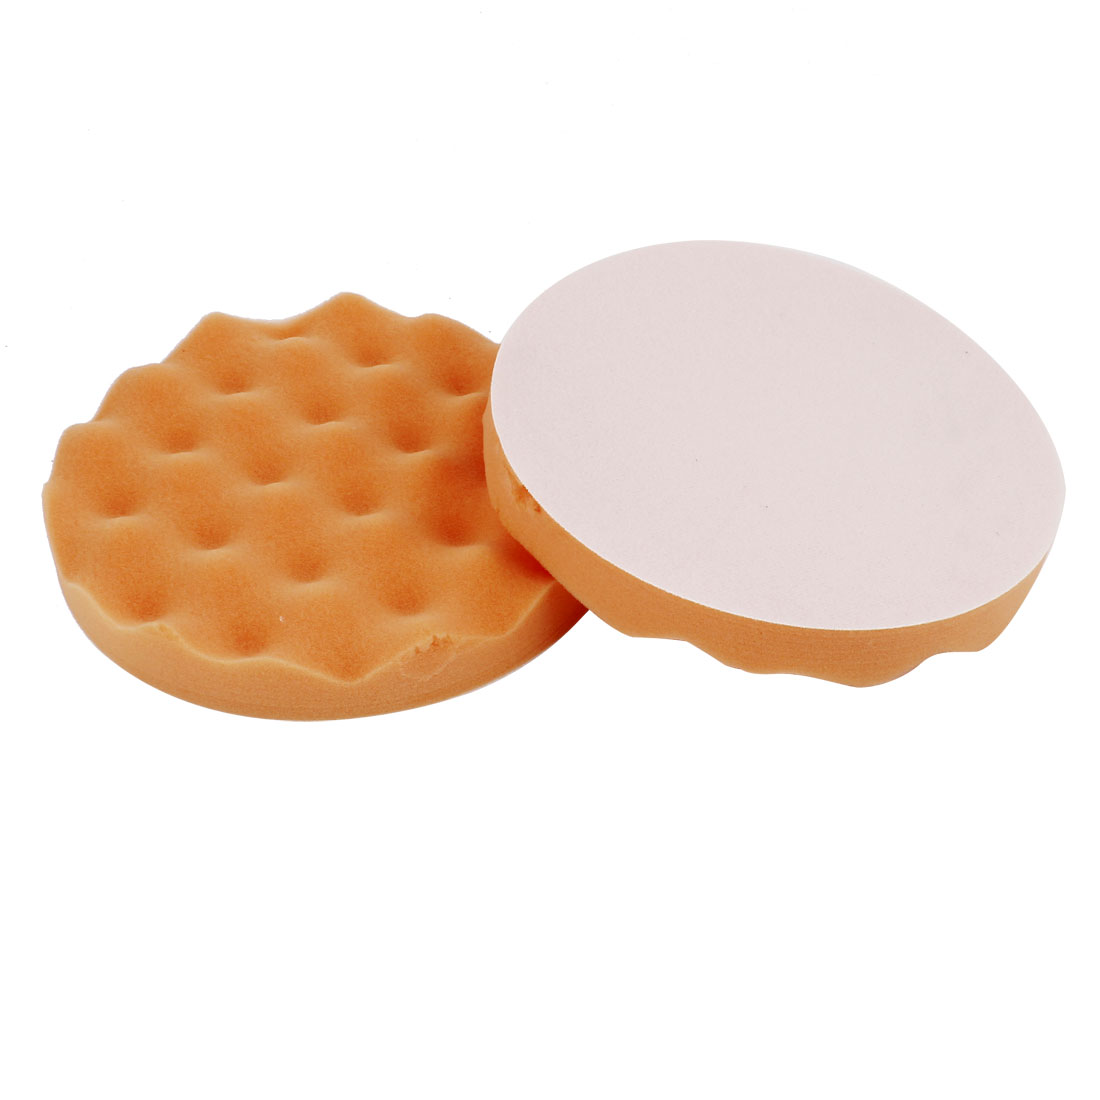 "2 Pcs Single Side Wave Cut 7"" Round Polishing Sponge Pad Tool Orange for Car"